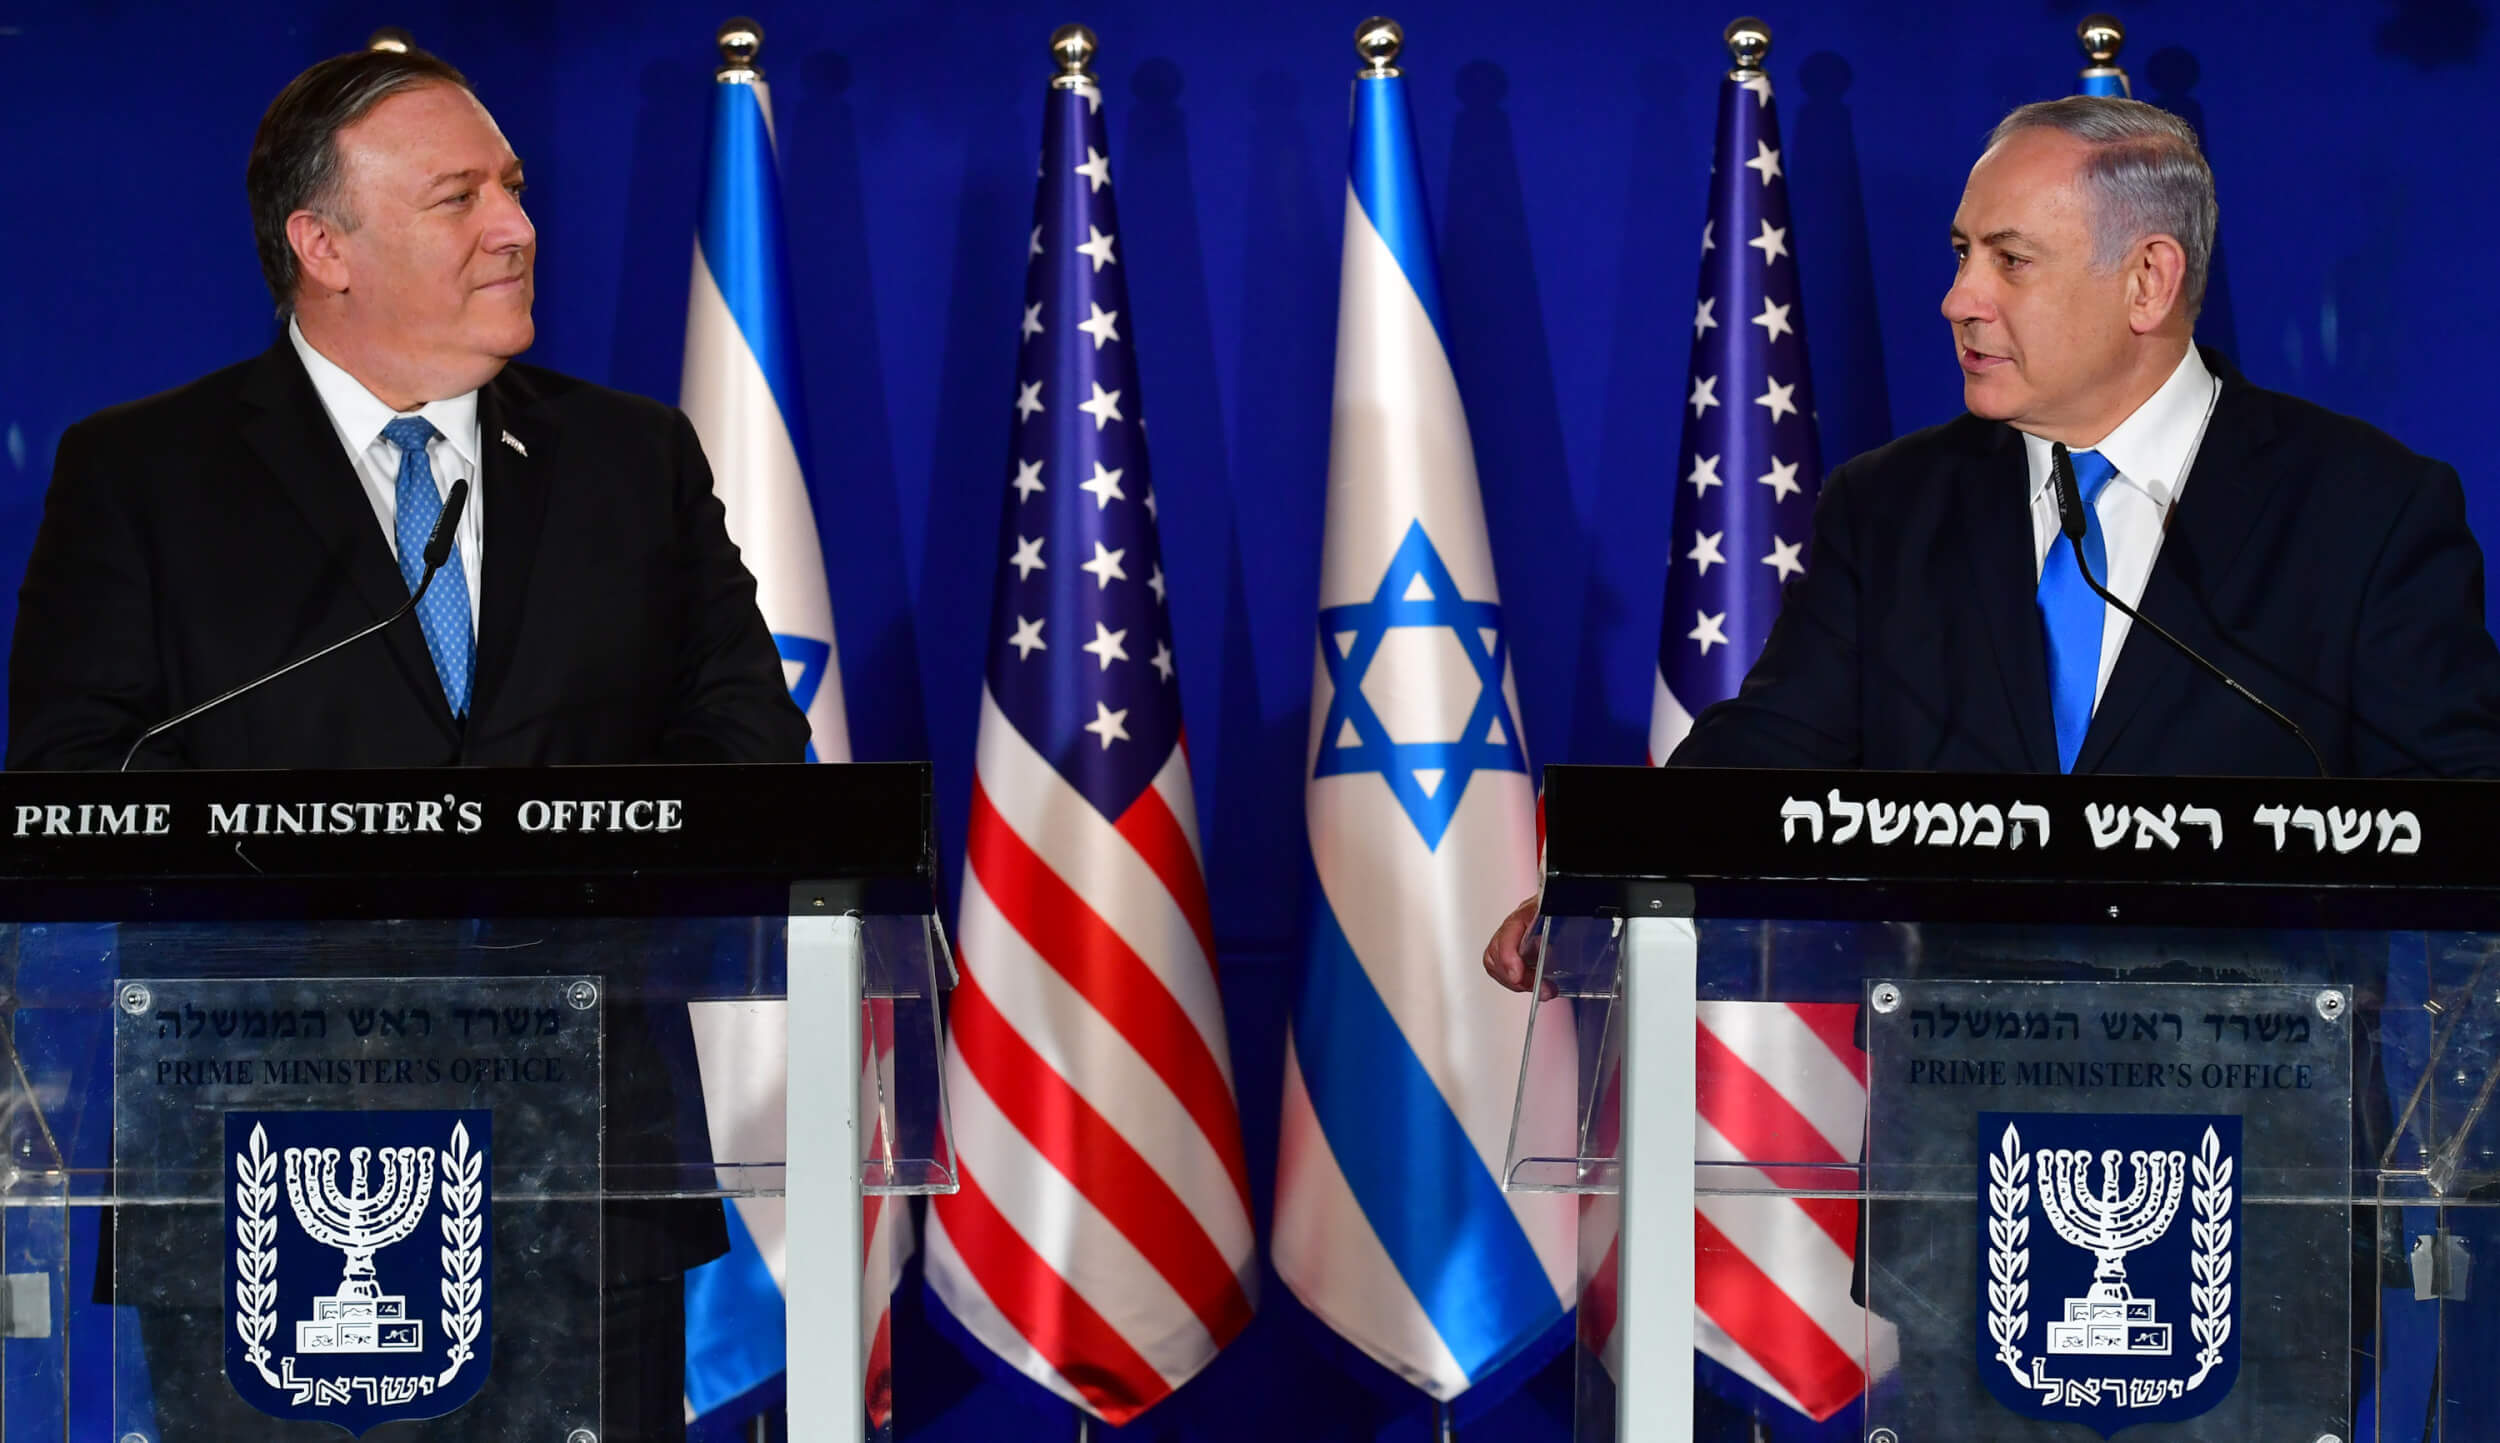 Israeli Prime Minister Benjamin Netanyahu and Secretary of State Mike Pompeo in Jerusalem, March 21, 2019. (Photo by Kobi Gideon/GPO)